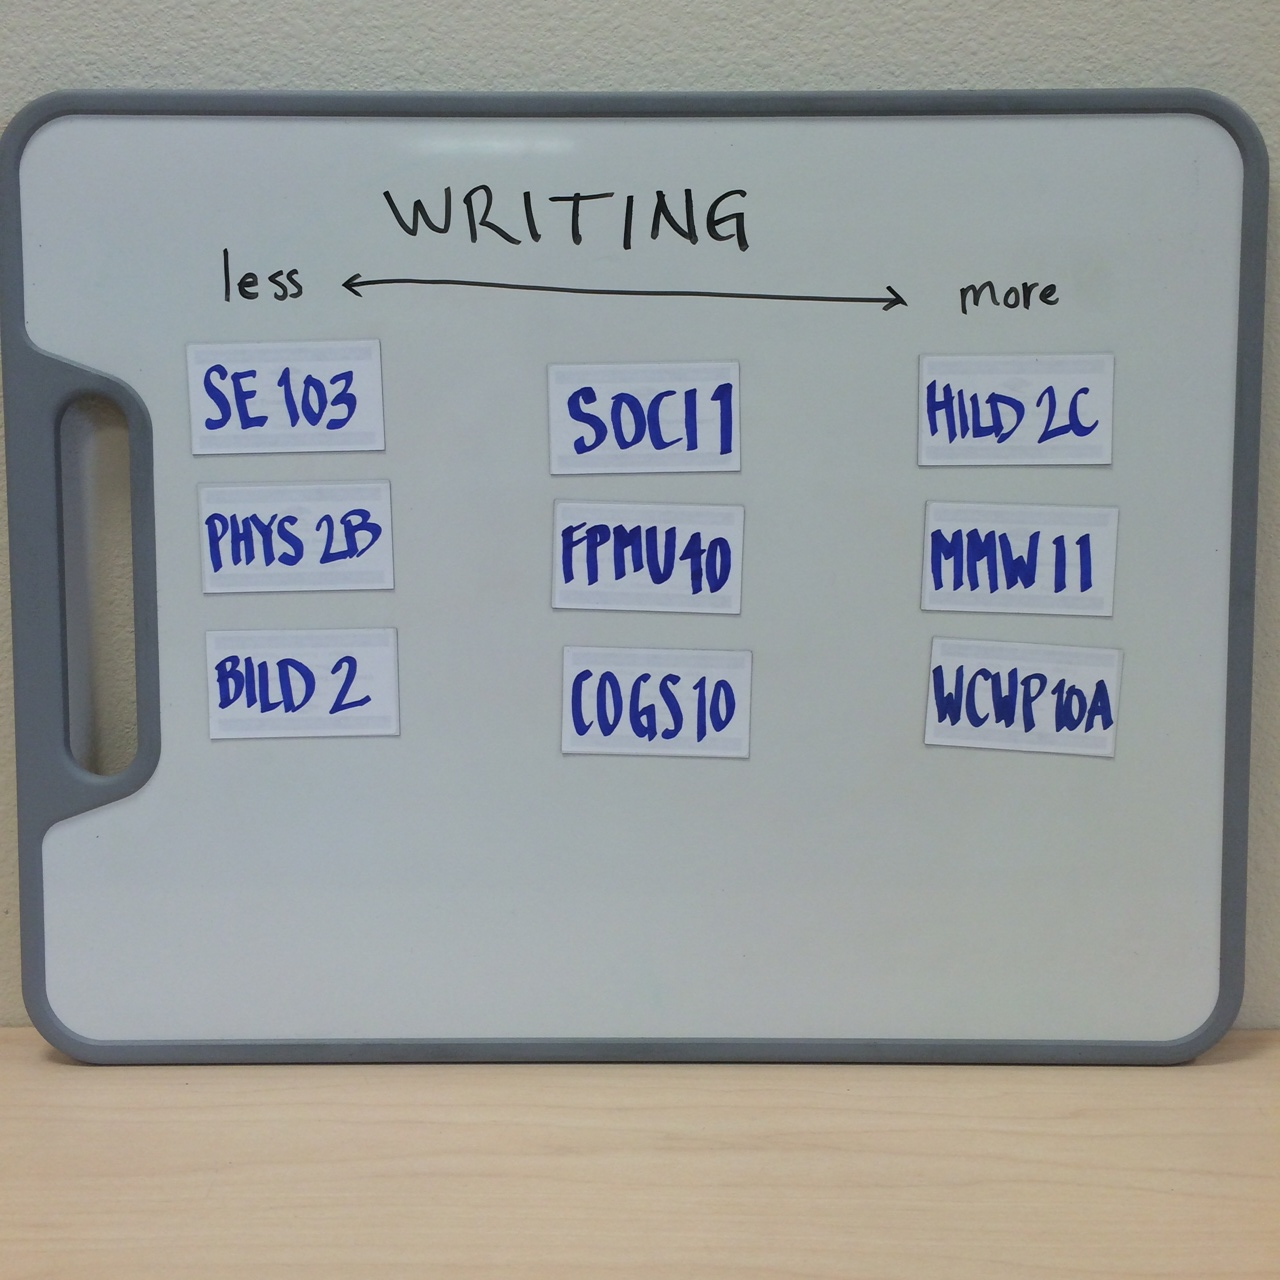 When the groups reported out, I quickly arranged the magnets on a handy whiteboard so I could hold it up for the others in the room to see. (Photo: Peter Newbury CC-BY)